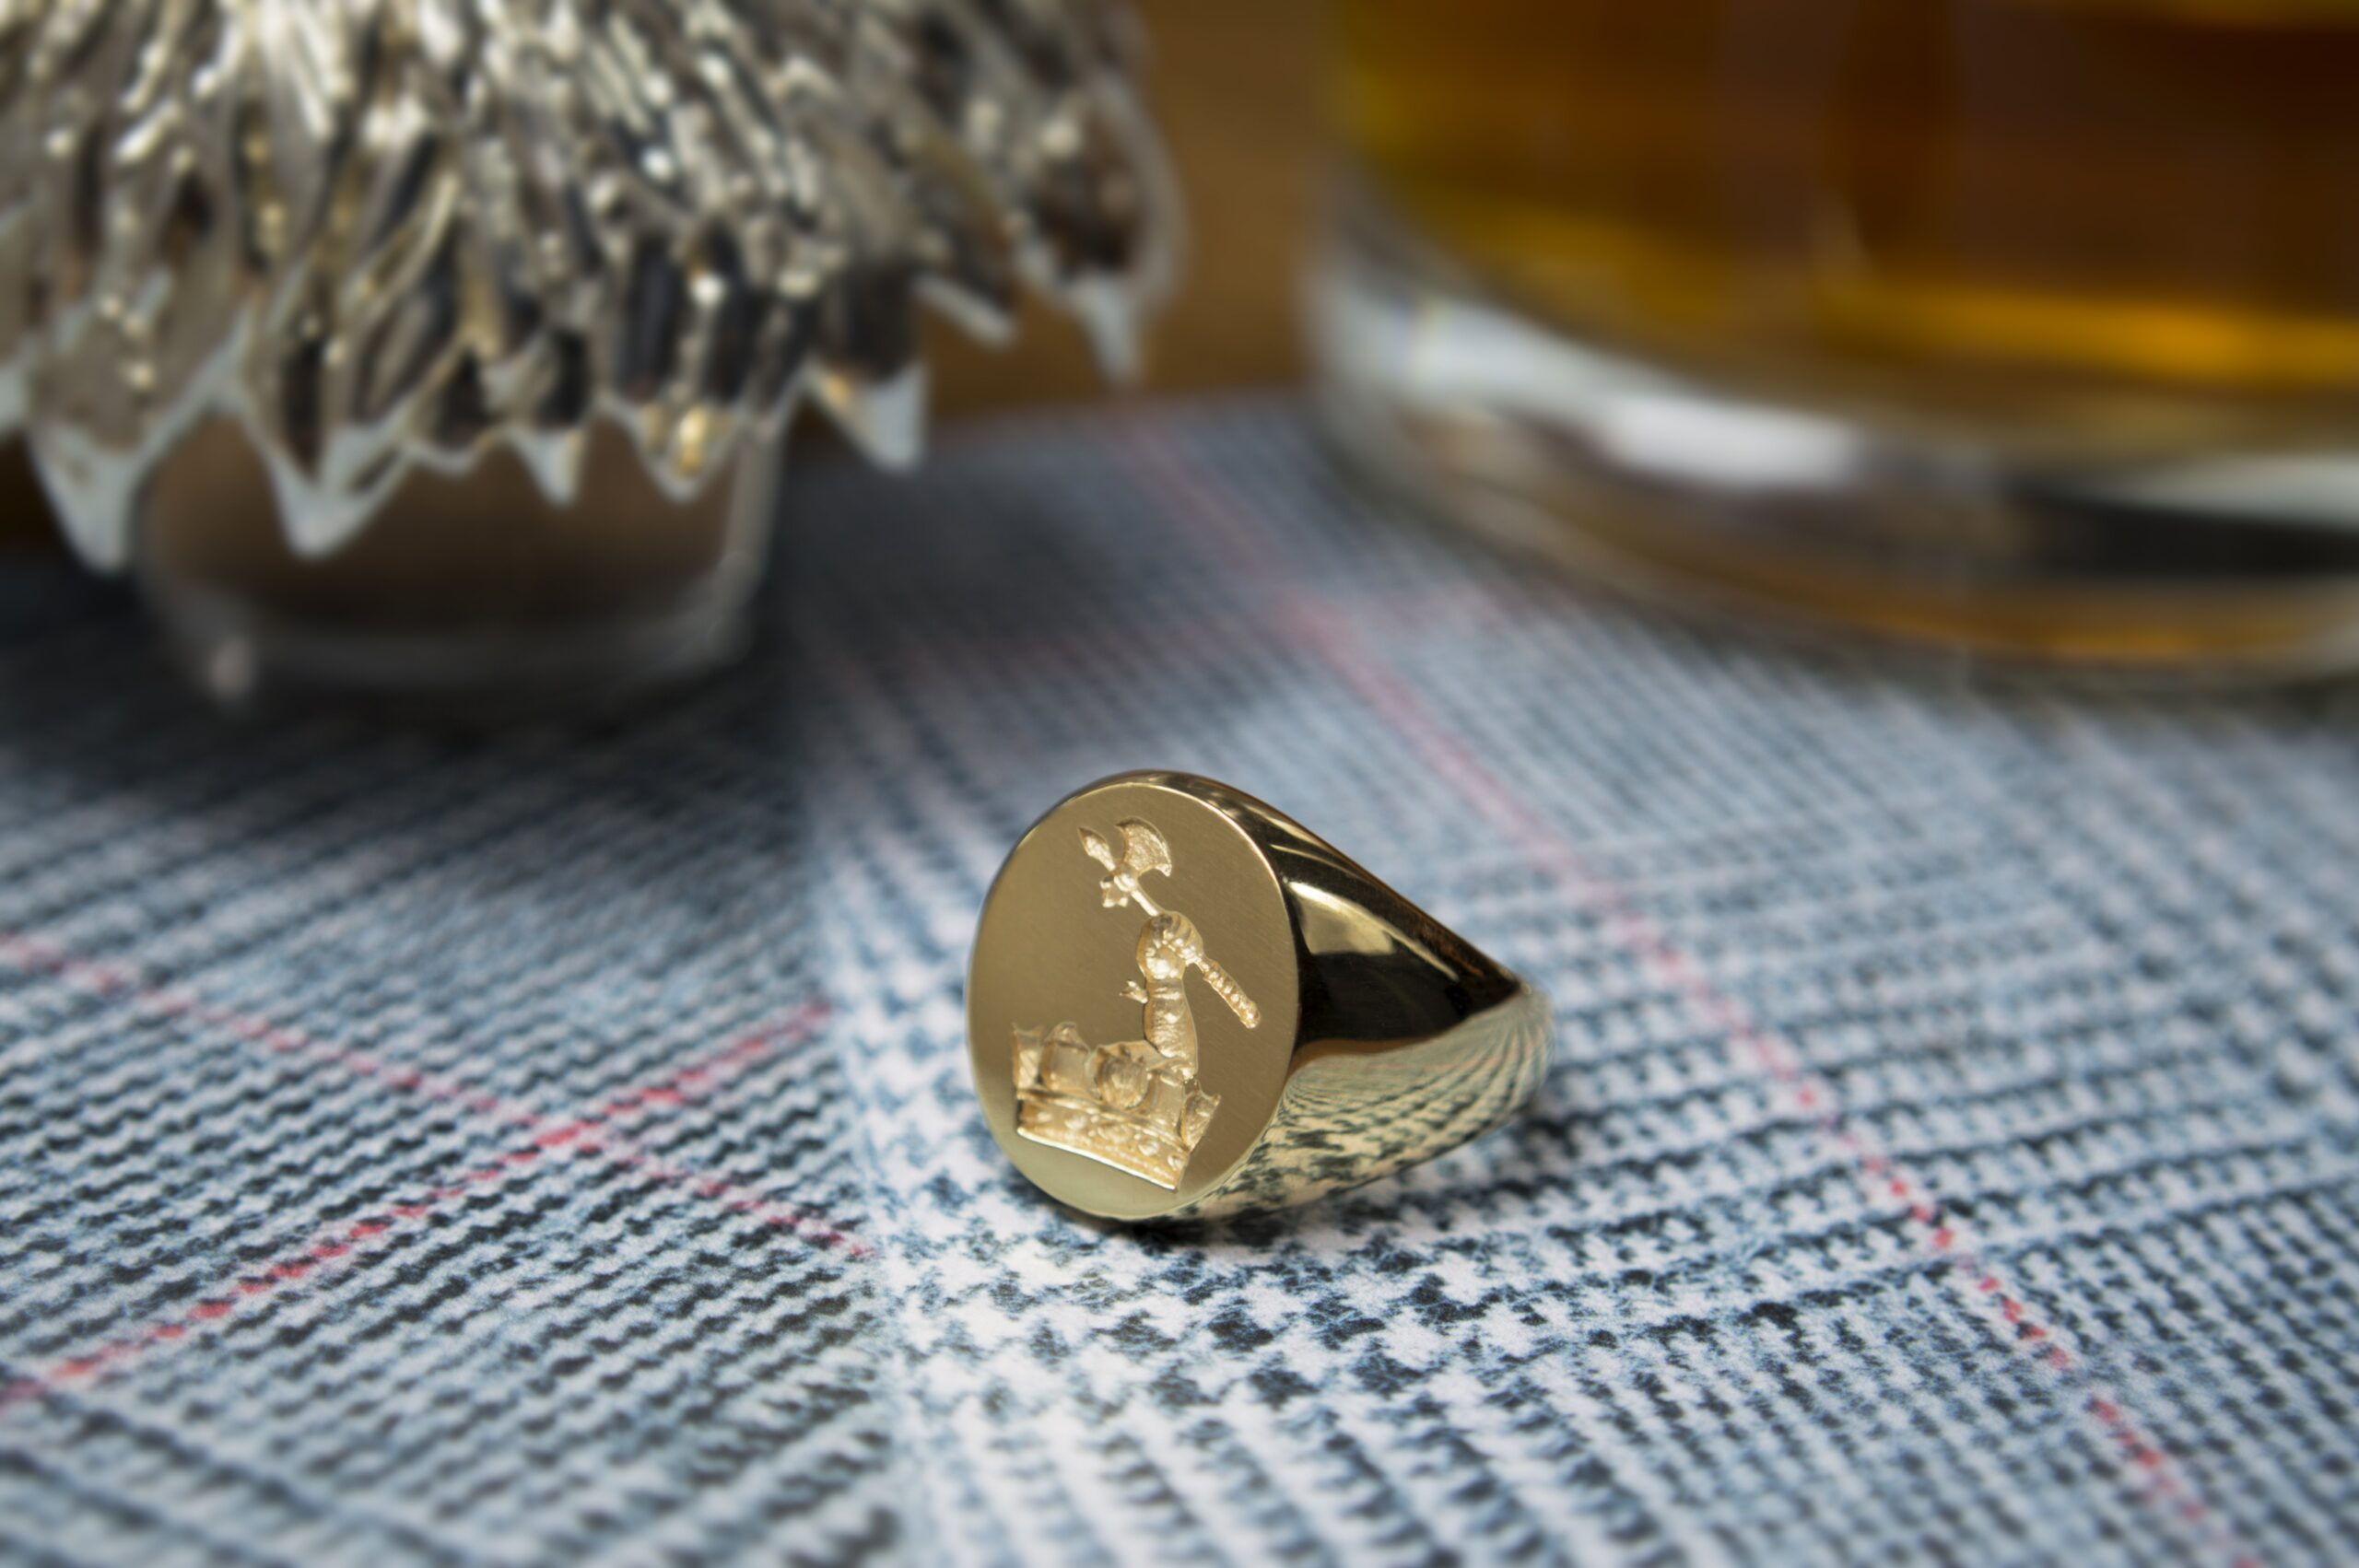 Deakin & Francis will use SMO certified gold to craft all of the signet rings it manufactures.